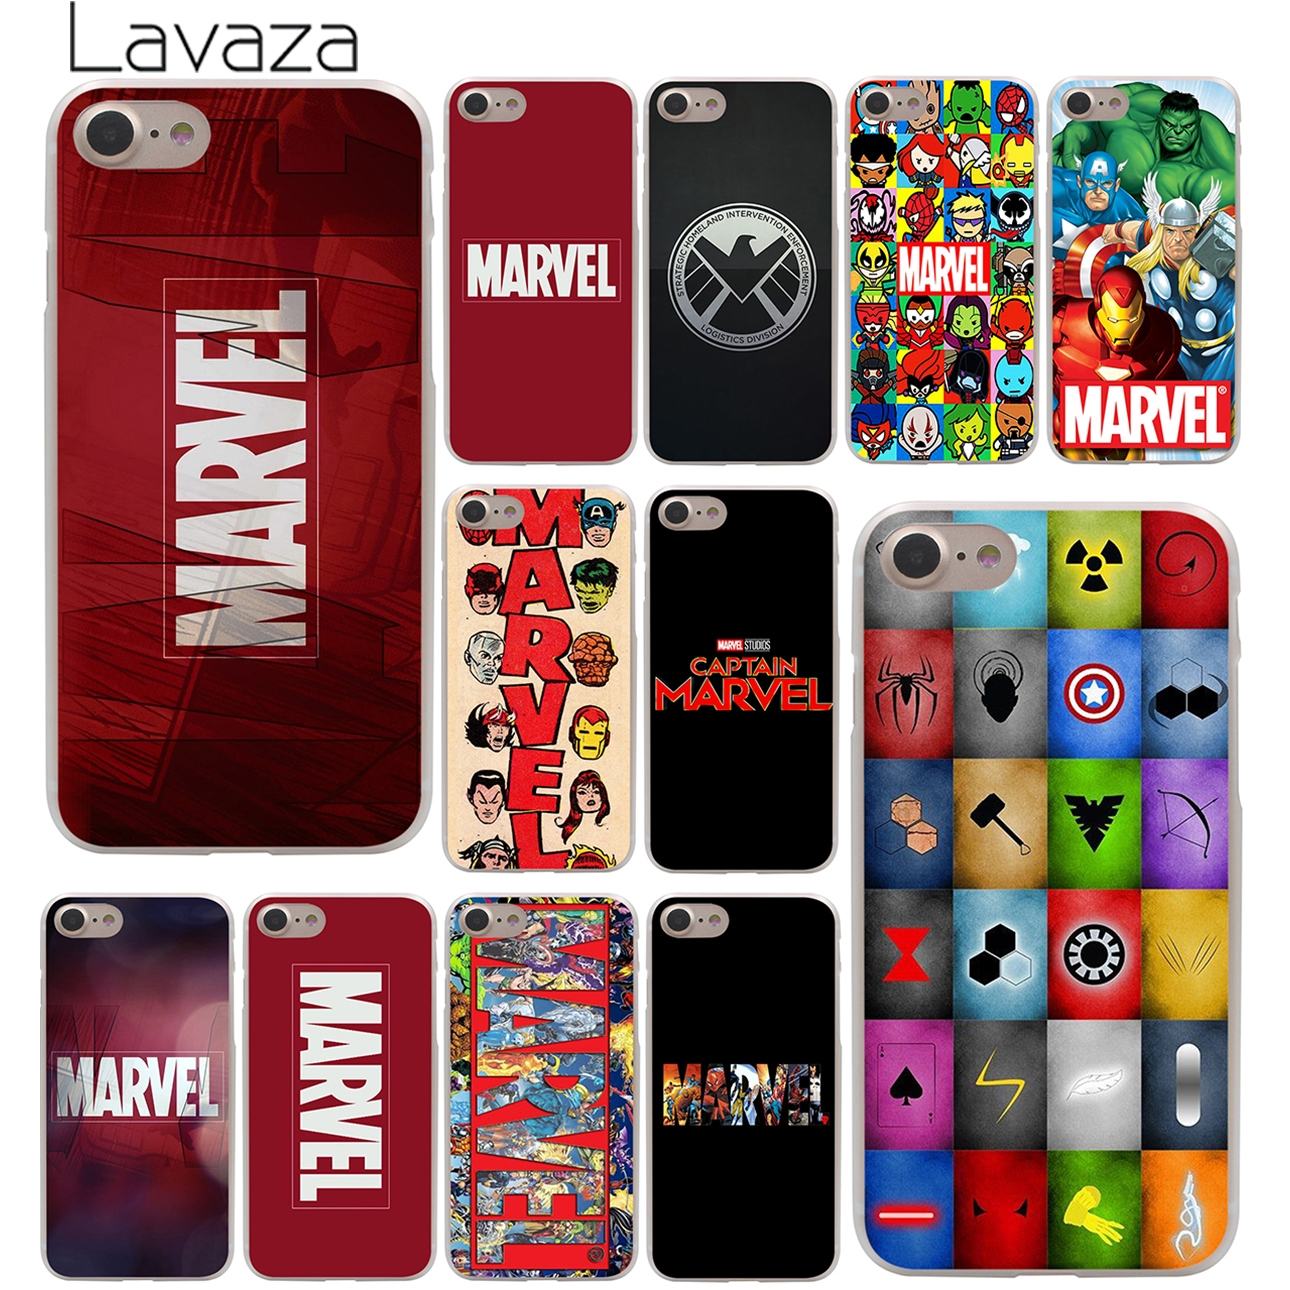 lavaza luxury marvel comics logo hard phone cover case for. Black Bedroom Furniture Sets. Home Design Ideas